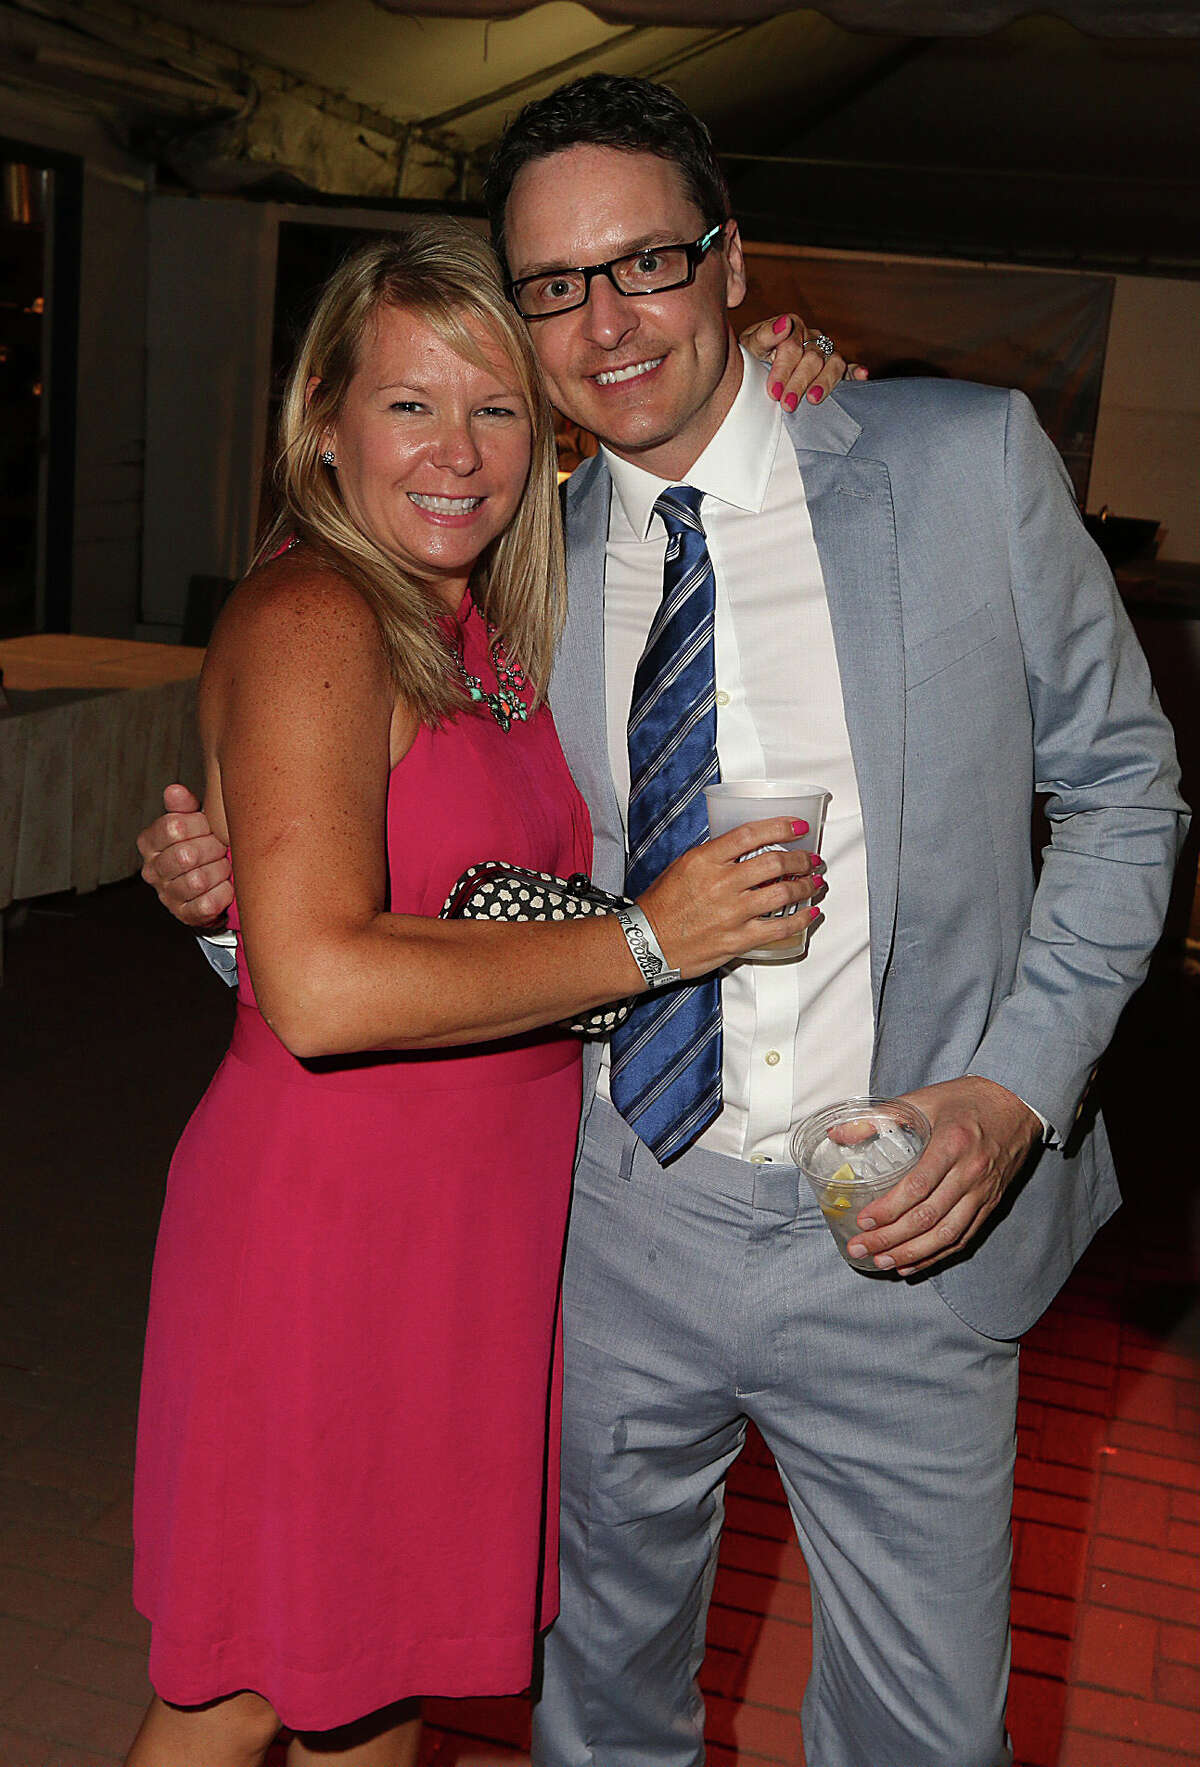 Were you seen at The 21st Annual Newton Plaza Siro's Cup to benefit the Center for Disability Services at Siro's in Saratoga Springs on Thursday, July 17, 2014?